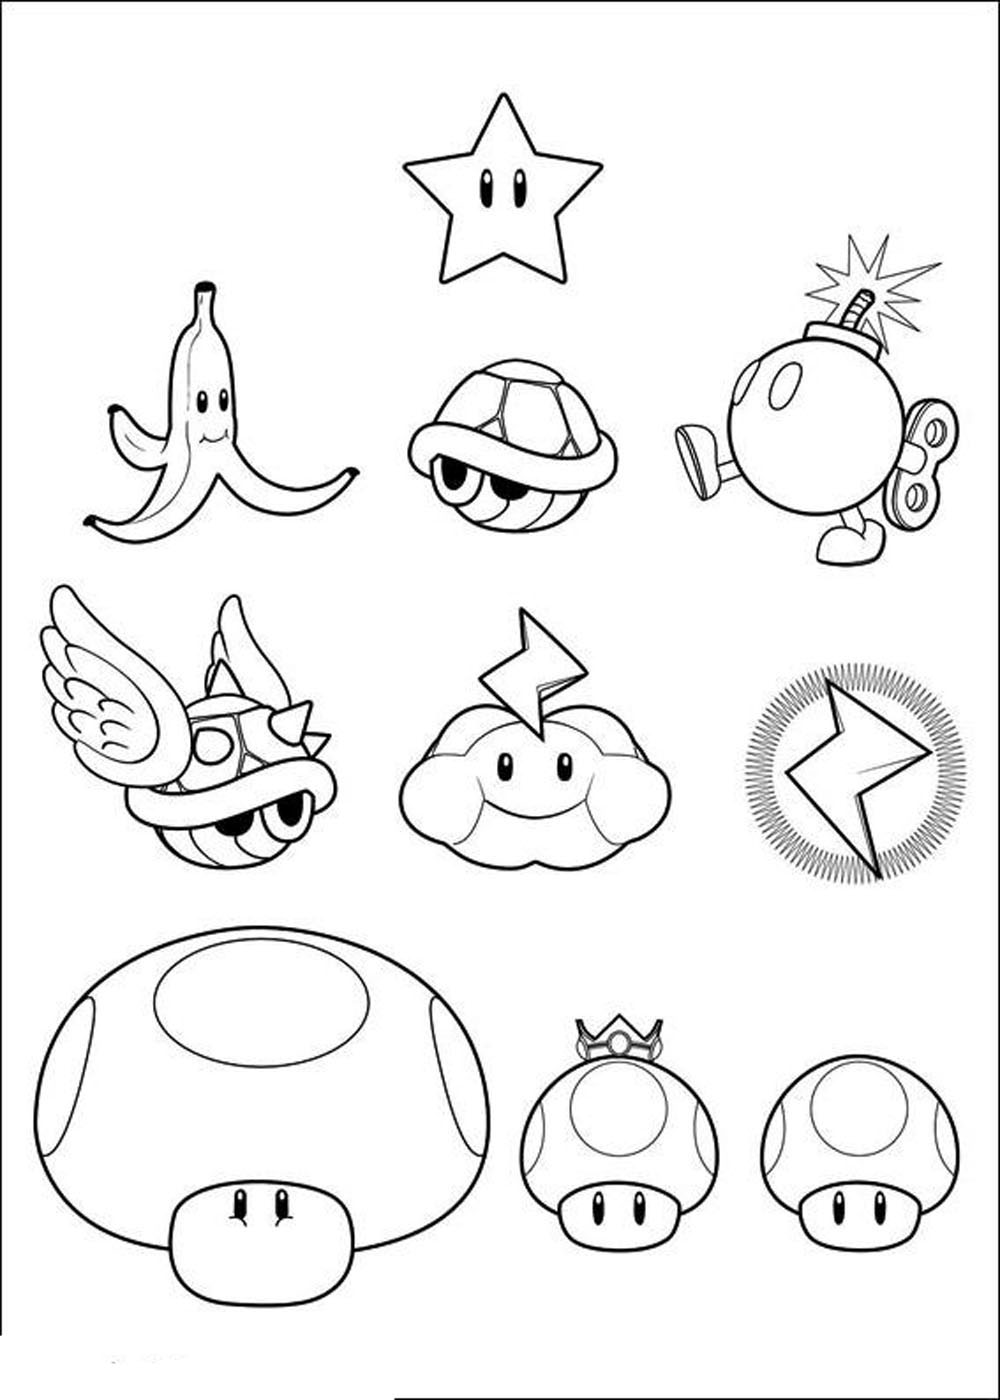 Coloring pages for kids mario bros - Check